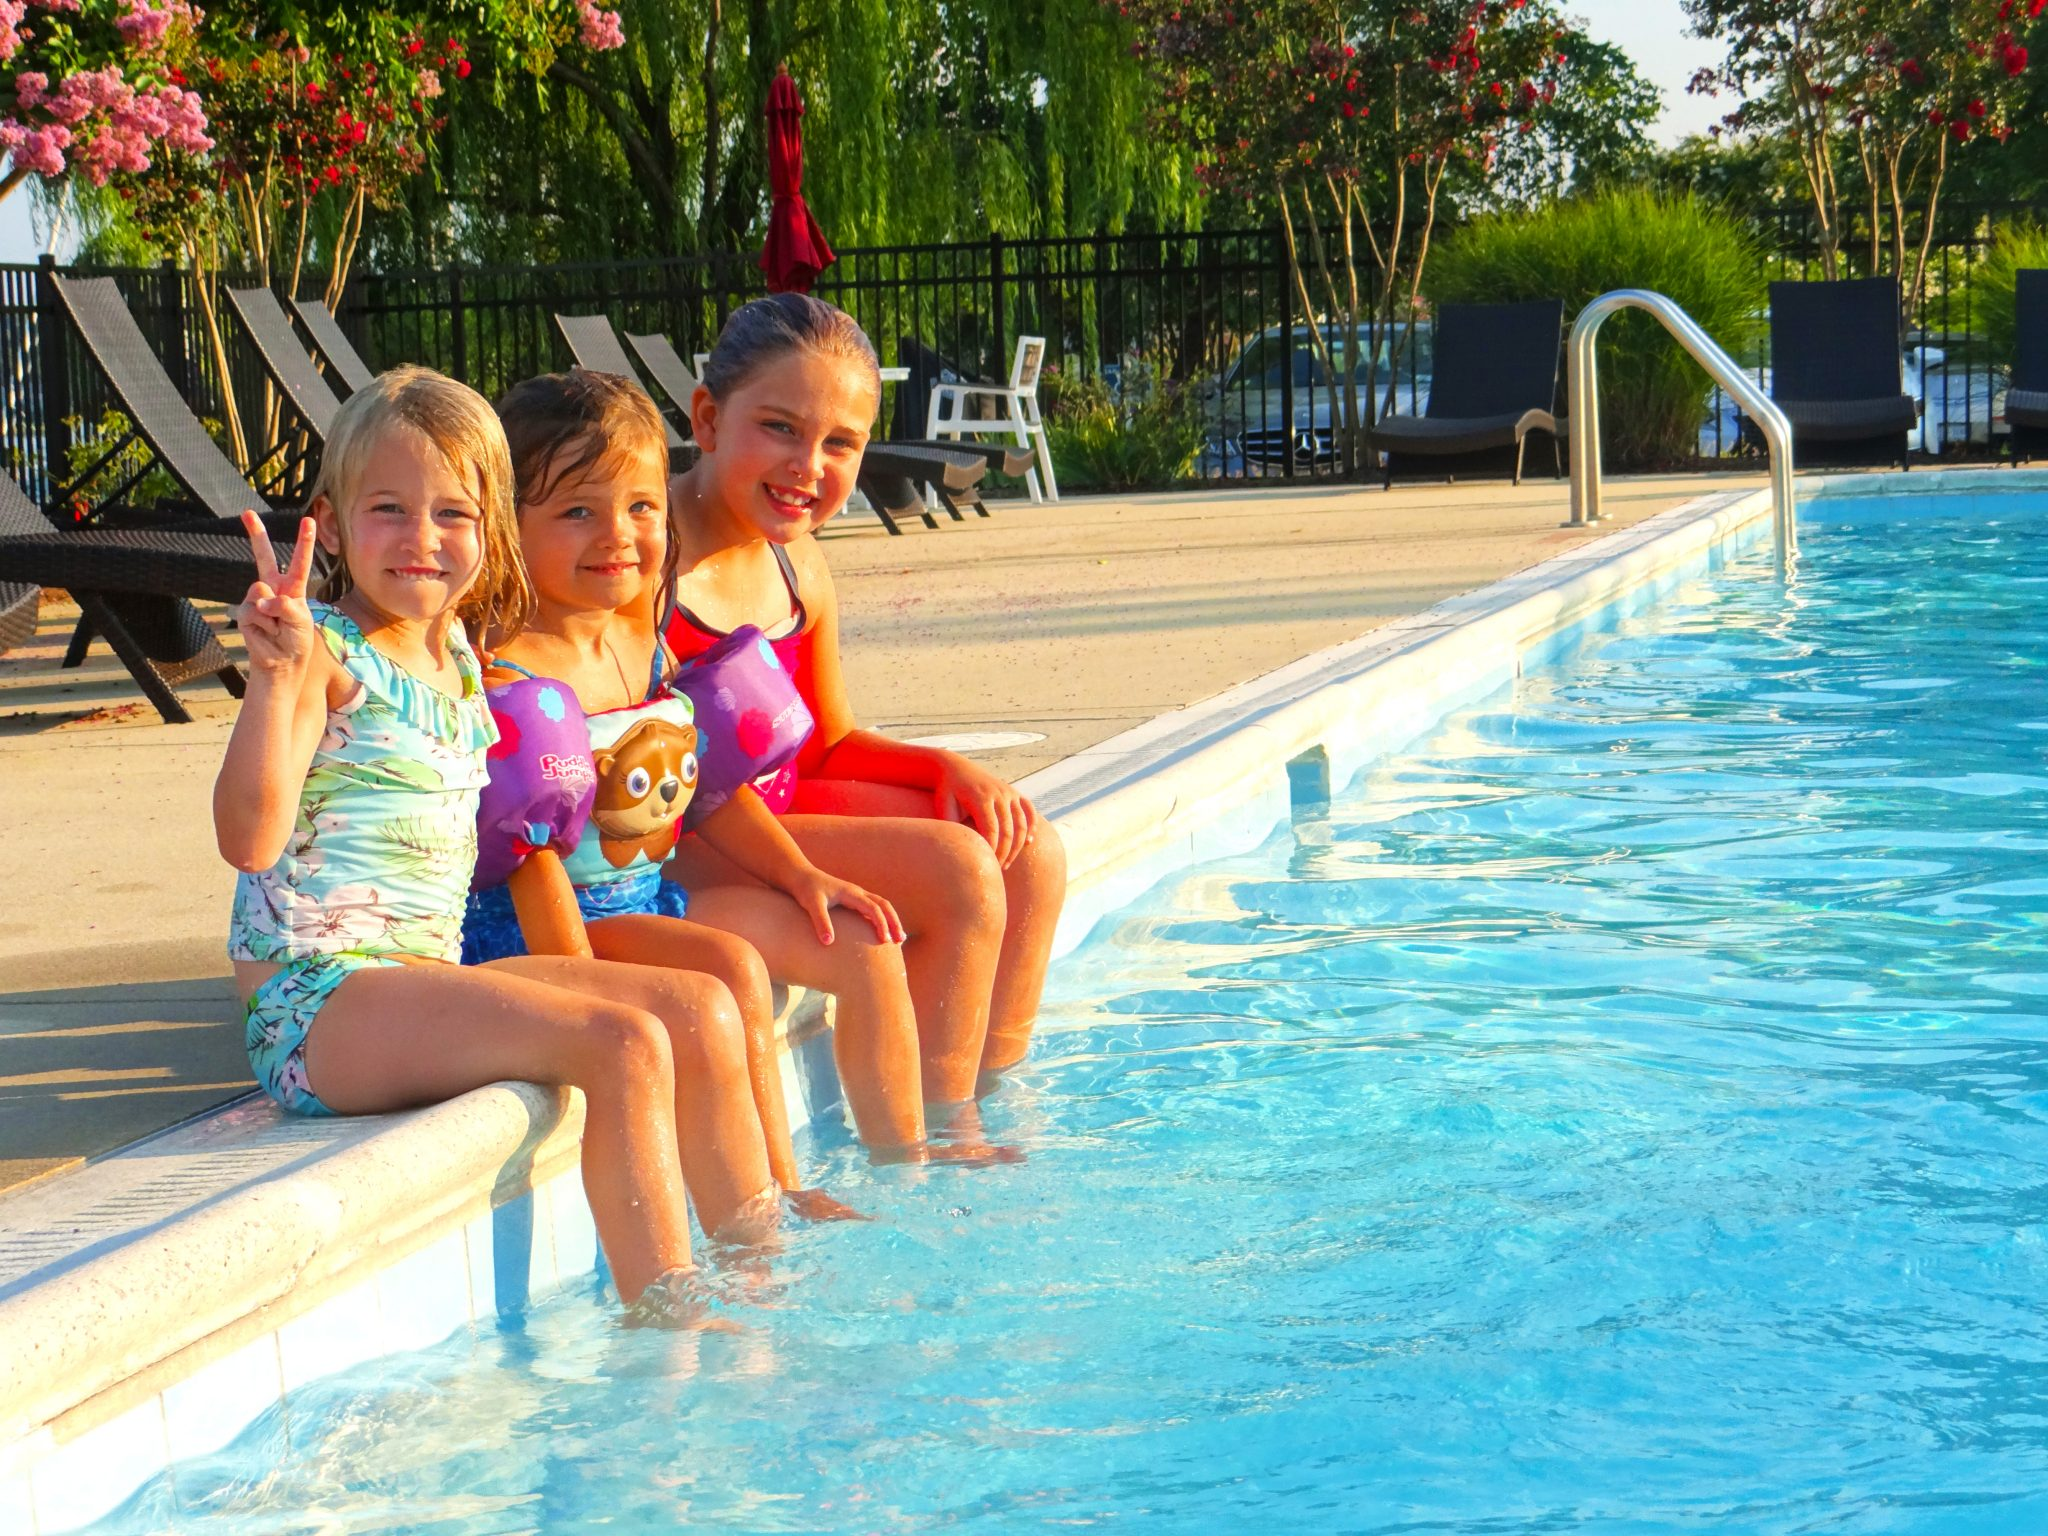 Shipwright Harbor Marina amenities include a private, saltwater pool